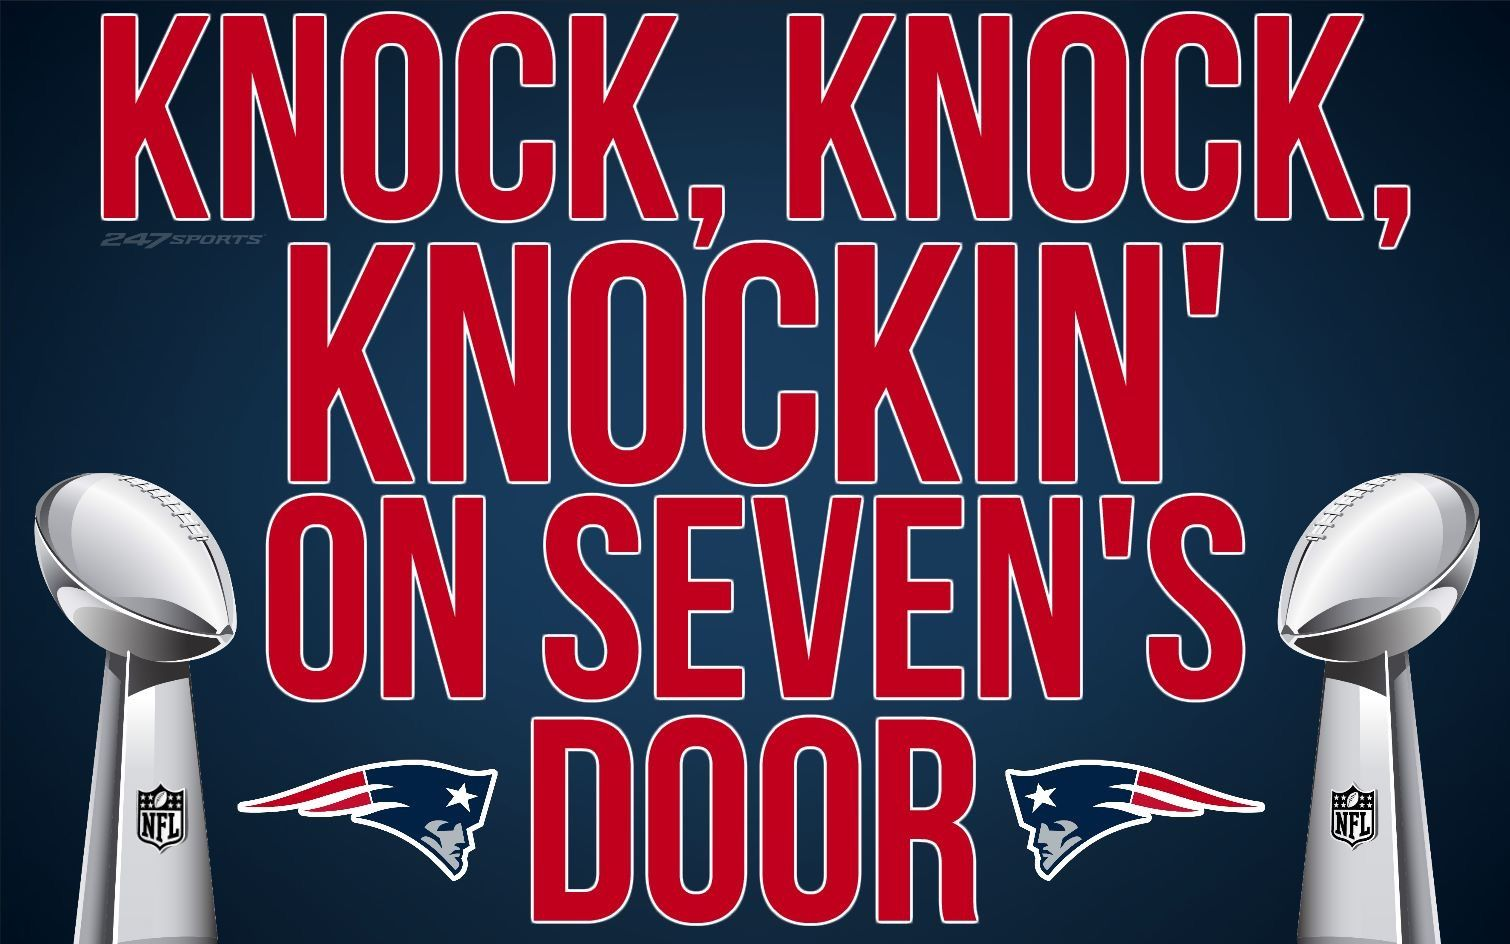 YAY BABY!! New england patriots players, New england